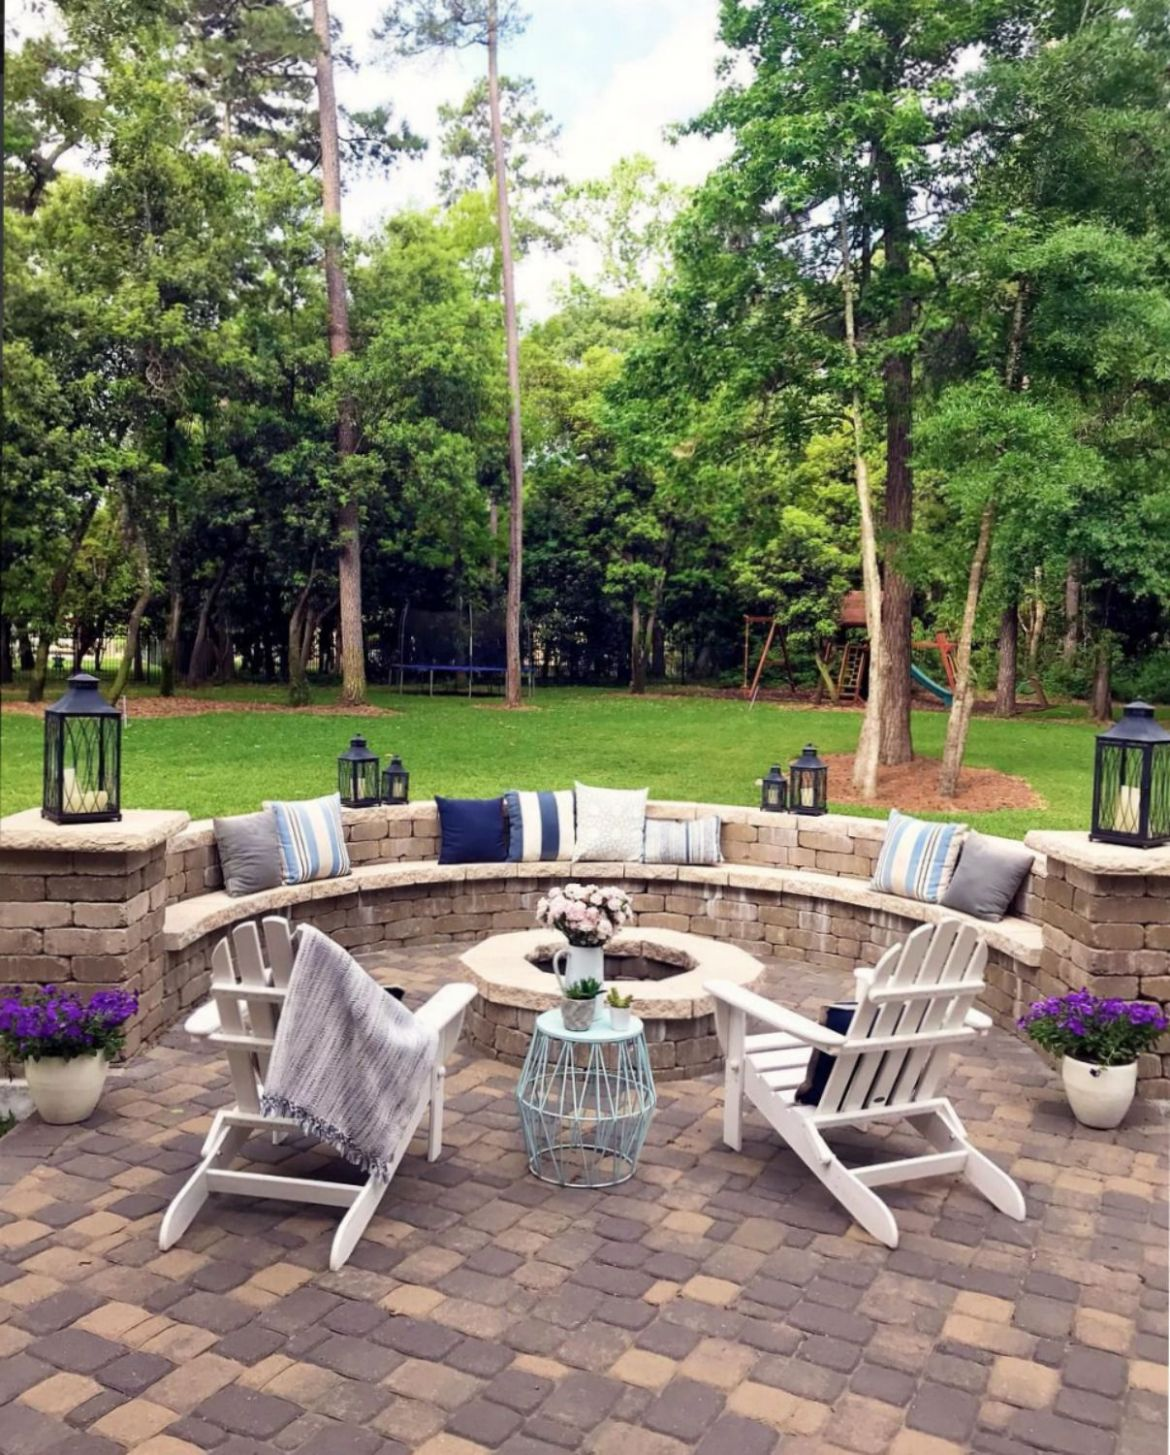 9 Backyard Landscaping Ideas to Inspire You - backyard remodel ideas